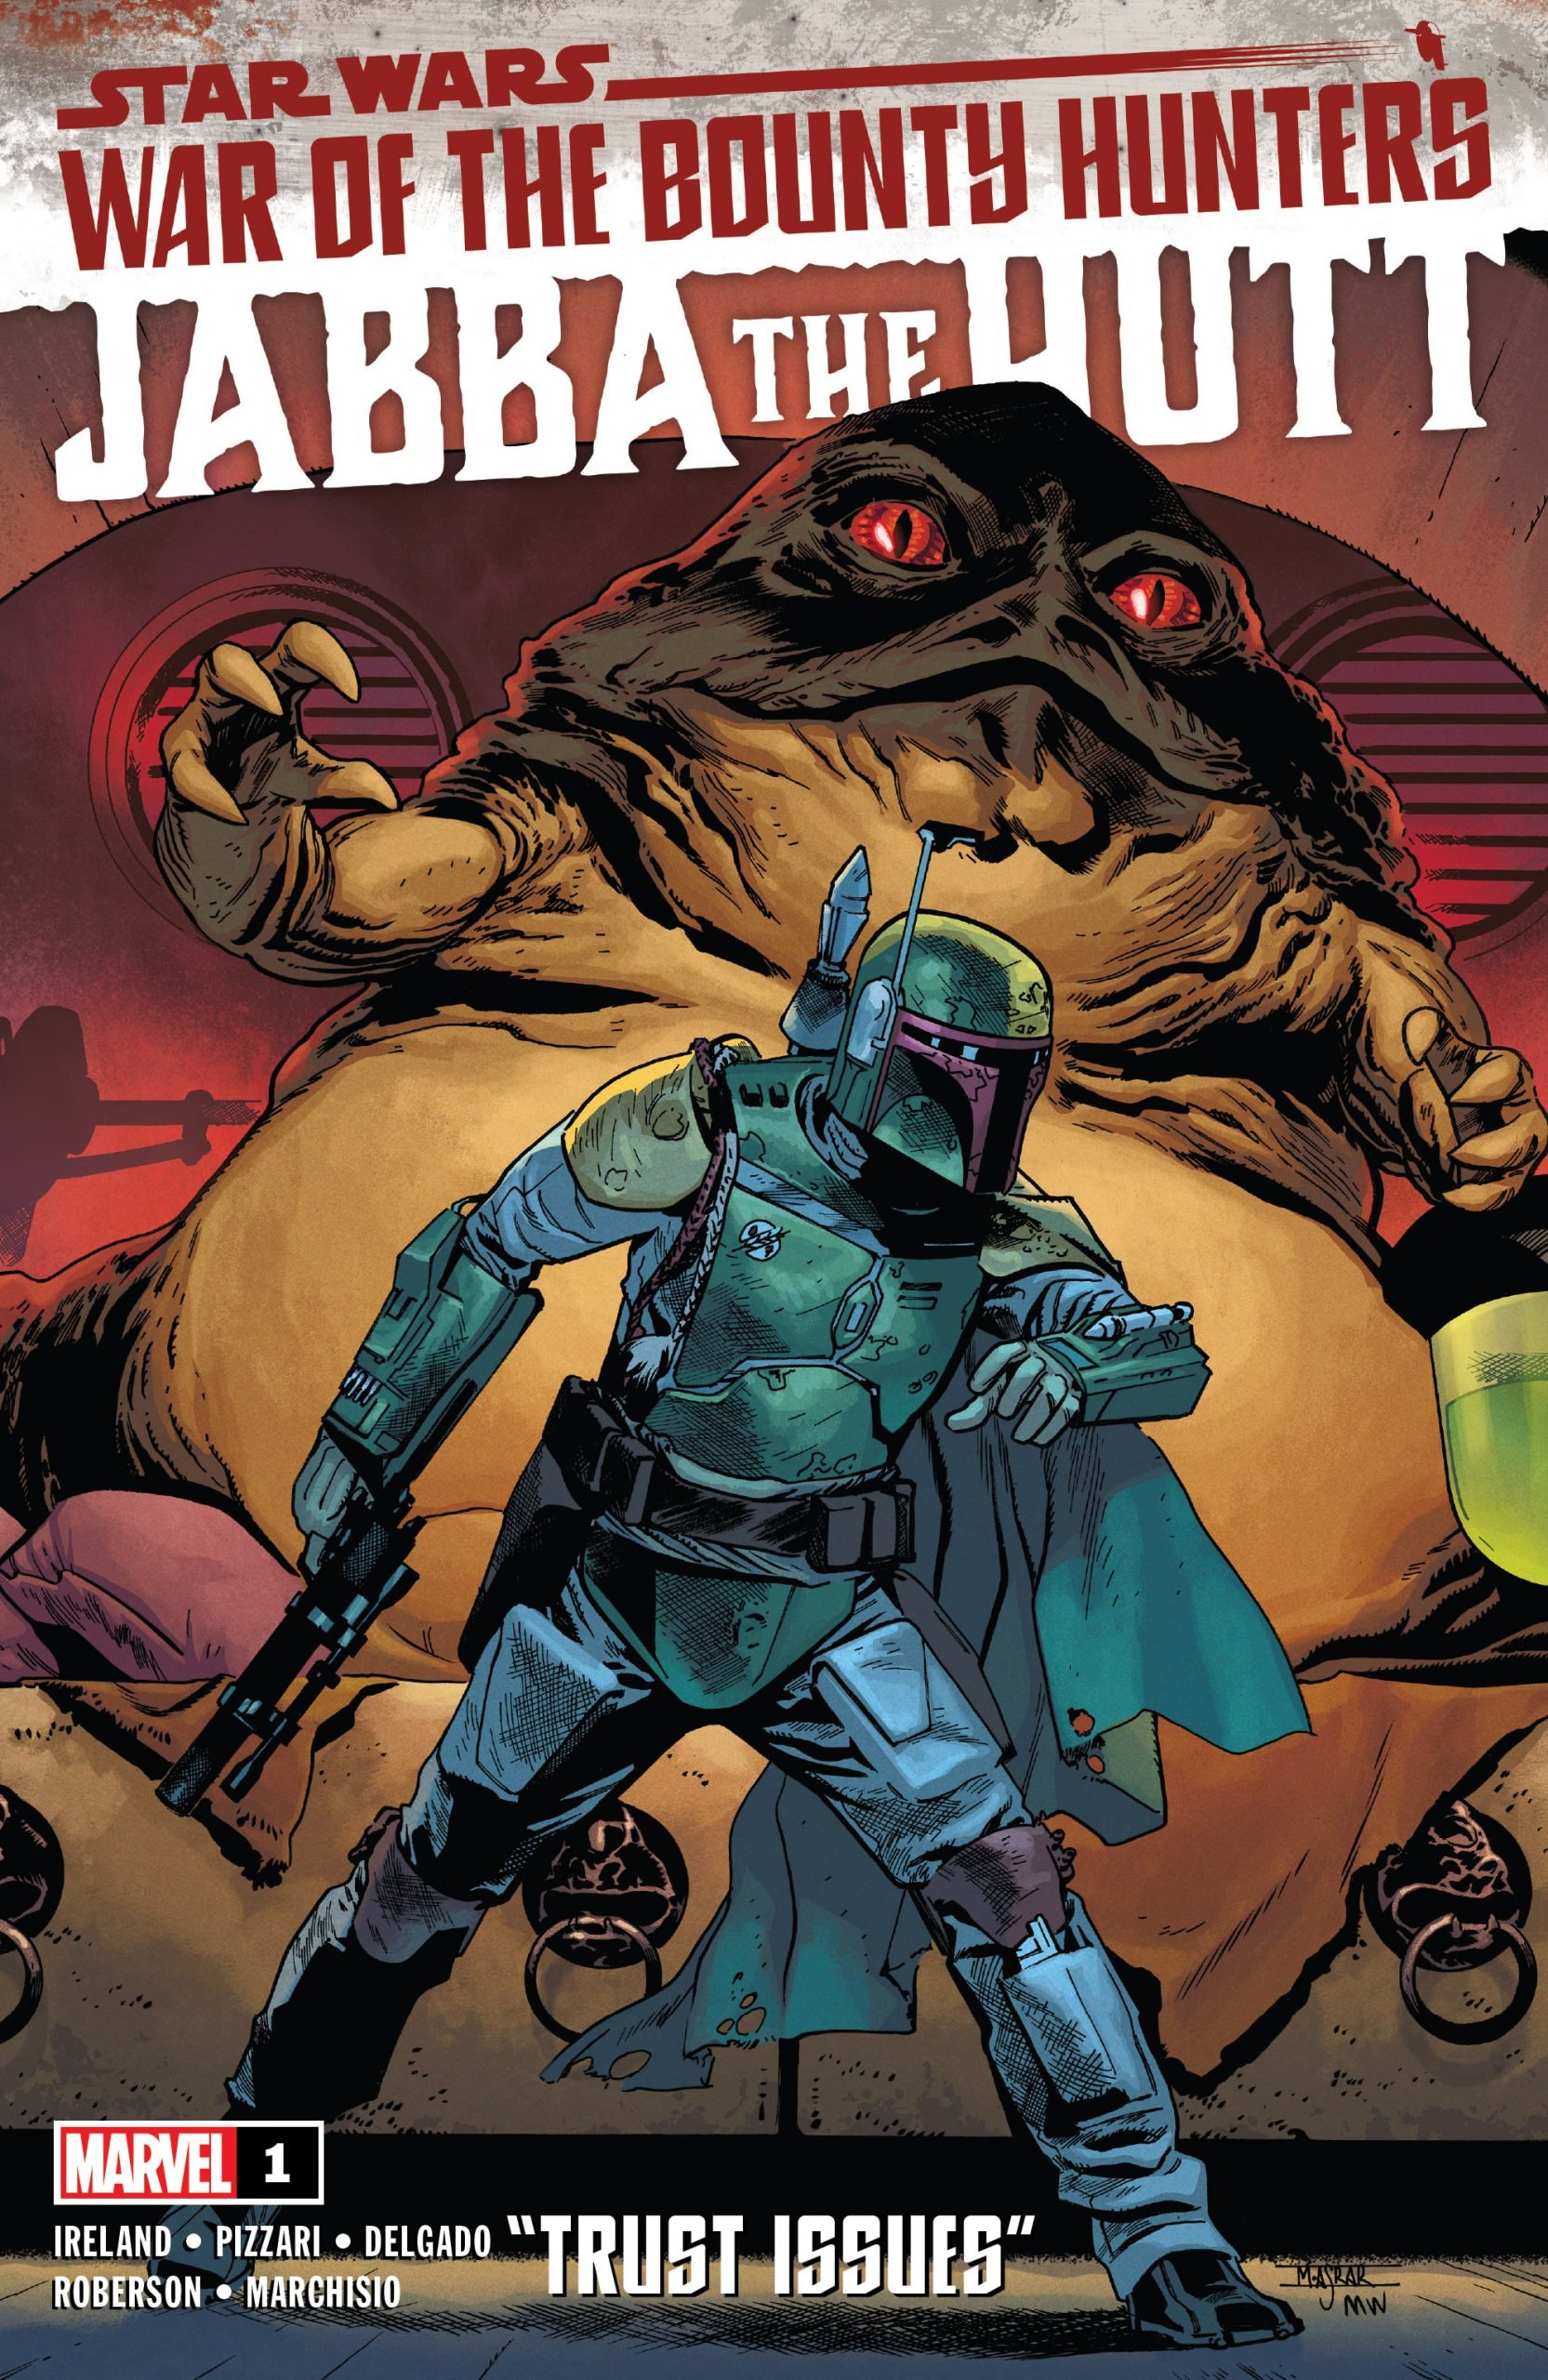 Review: A New Player Enters the Game in 'Jabba the Hutt #1'